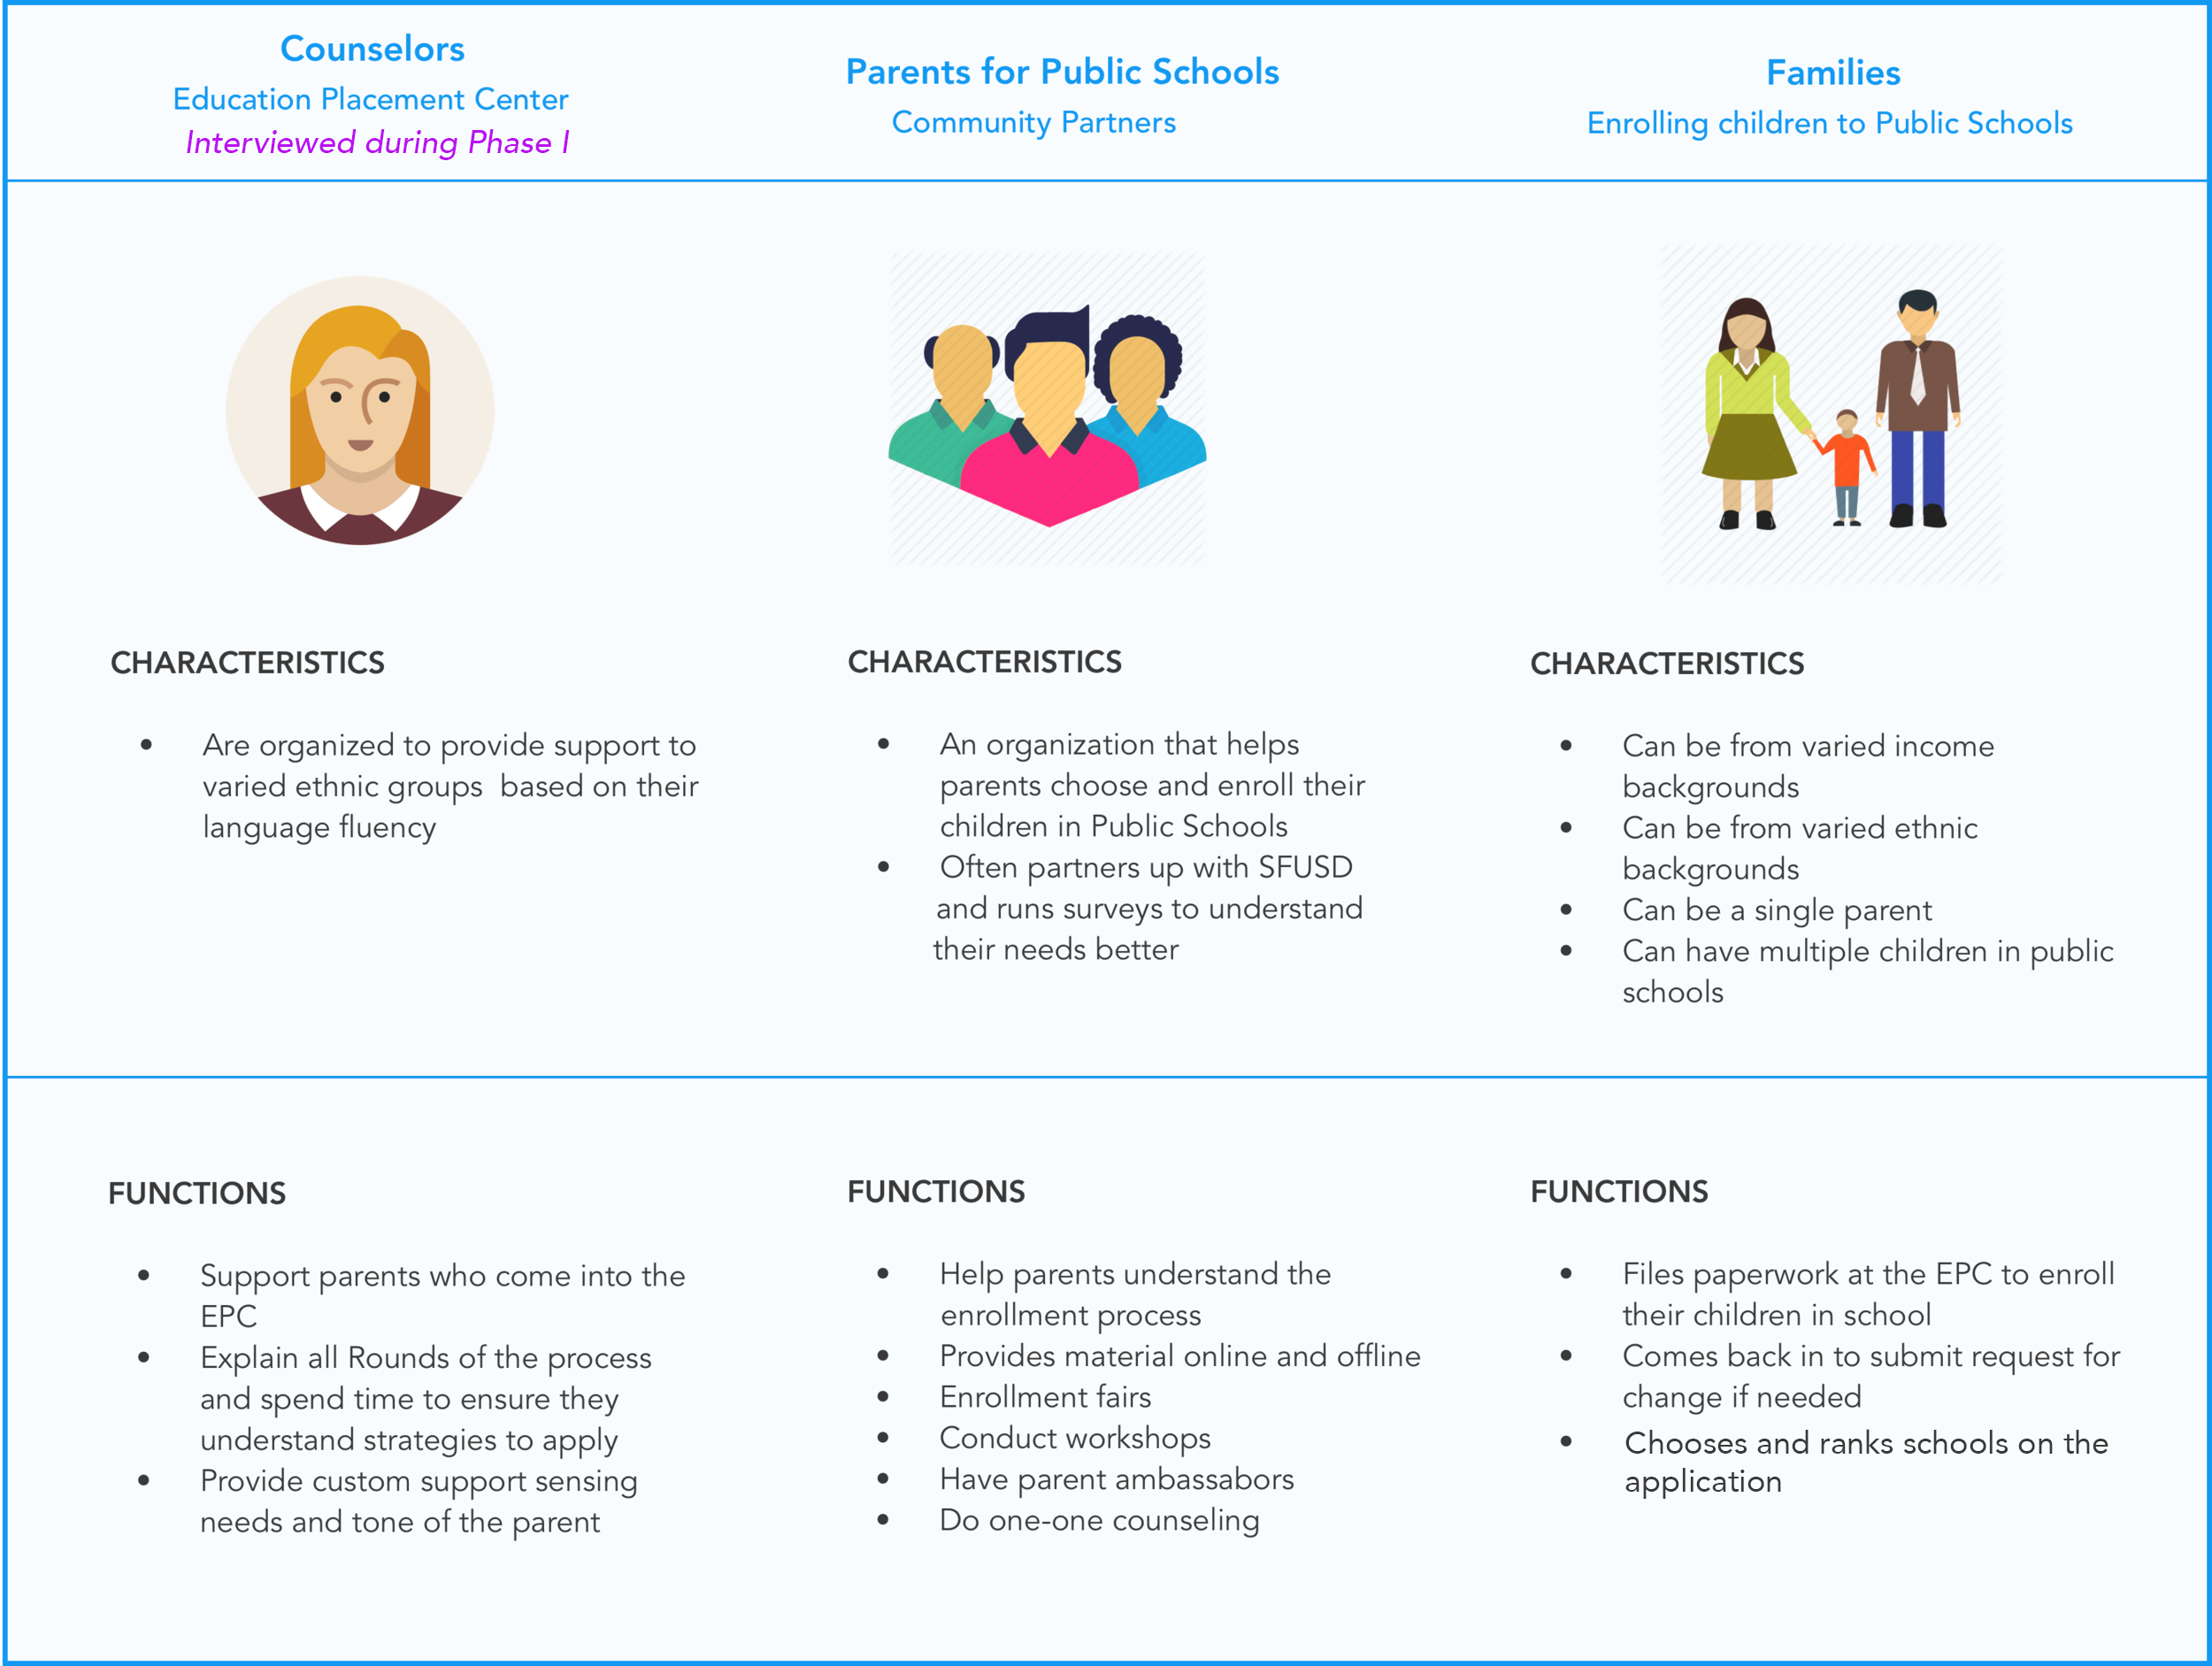 Figure: Personas with characteristics and their functions